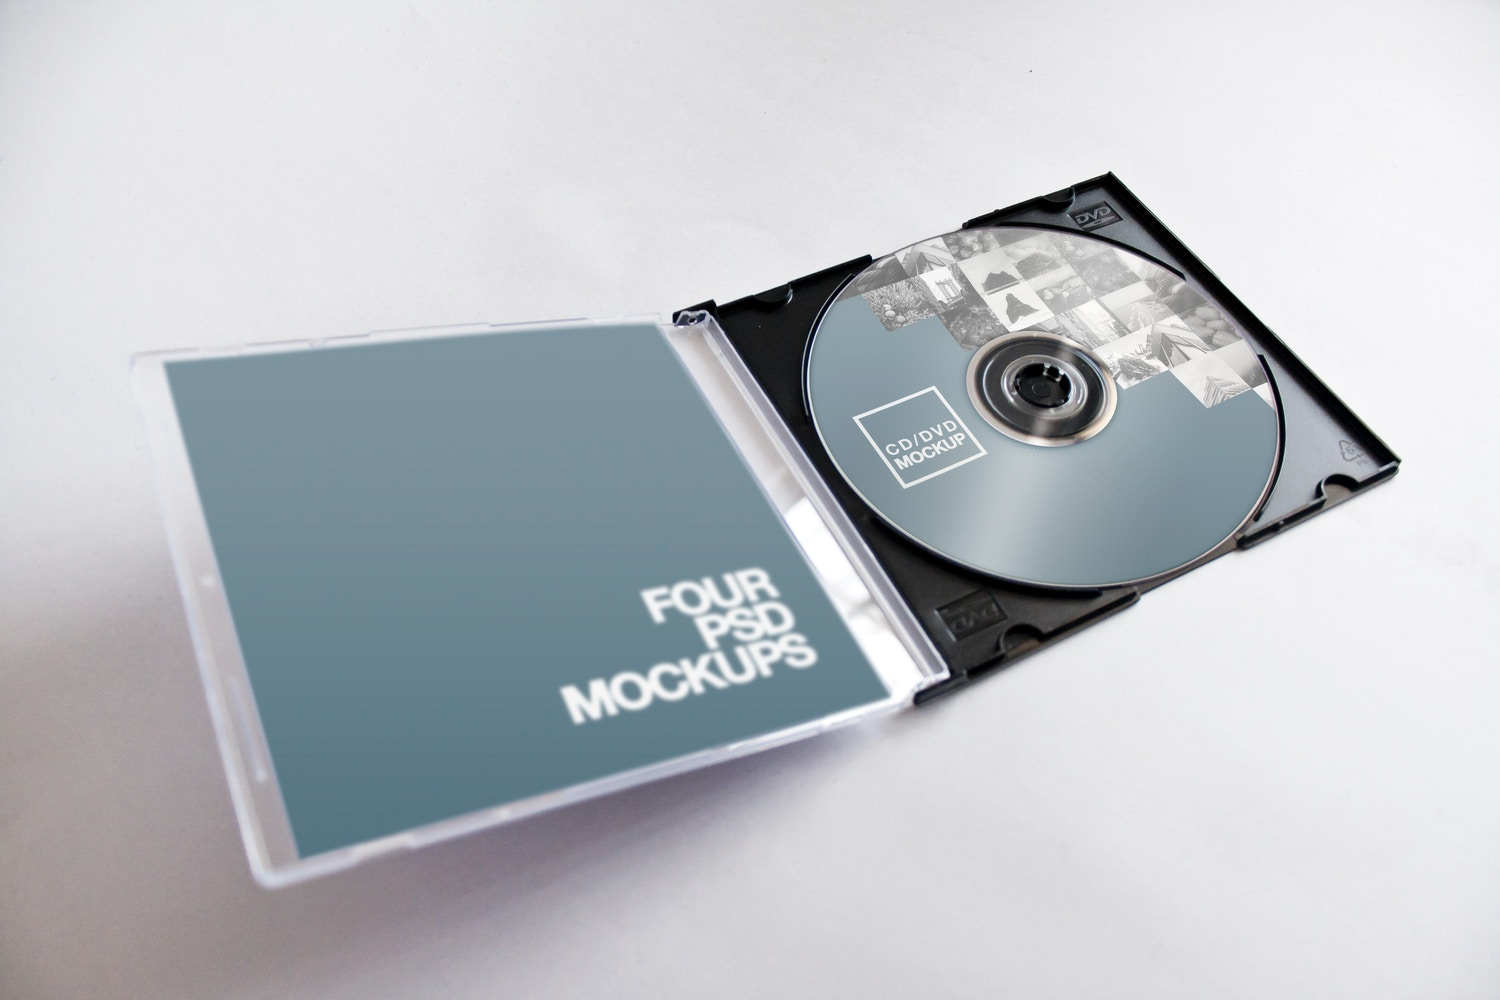 CD-DVD Jewel Case Opened Mockup 02 by Carlos Viloria on Original Mockups